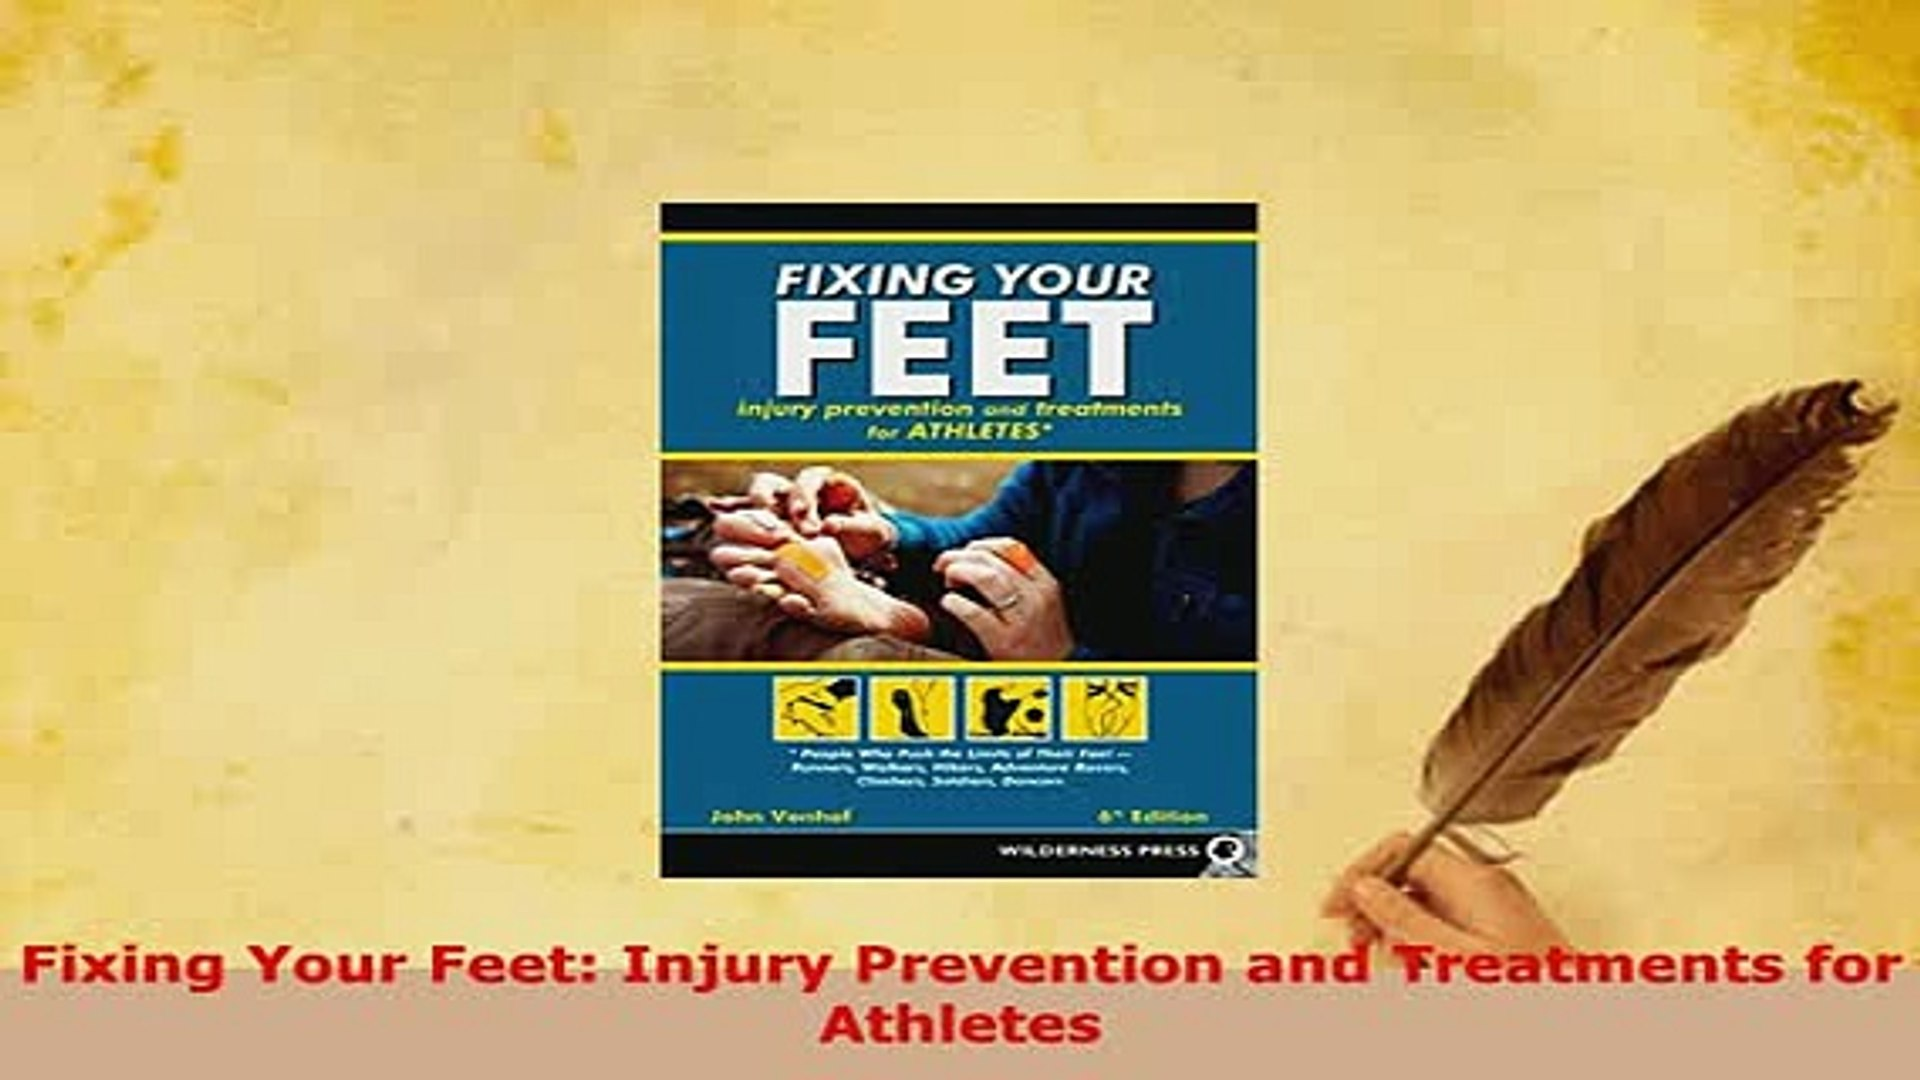 Injury Prevention and Treatments for Athletes Fixing Your Feet